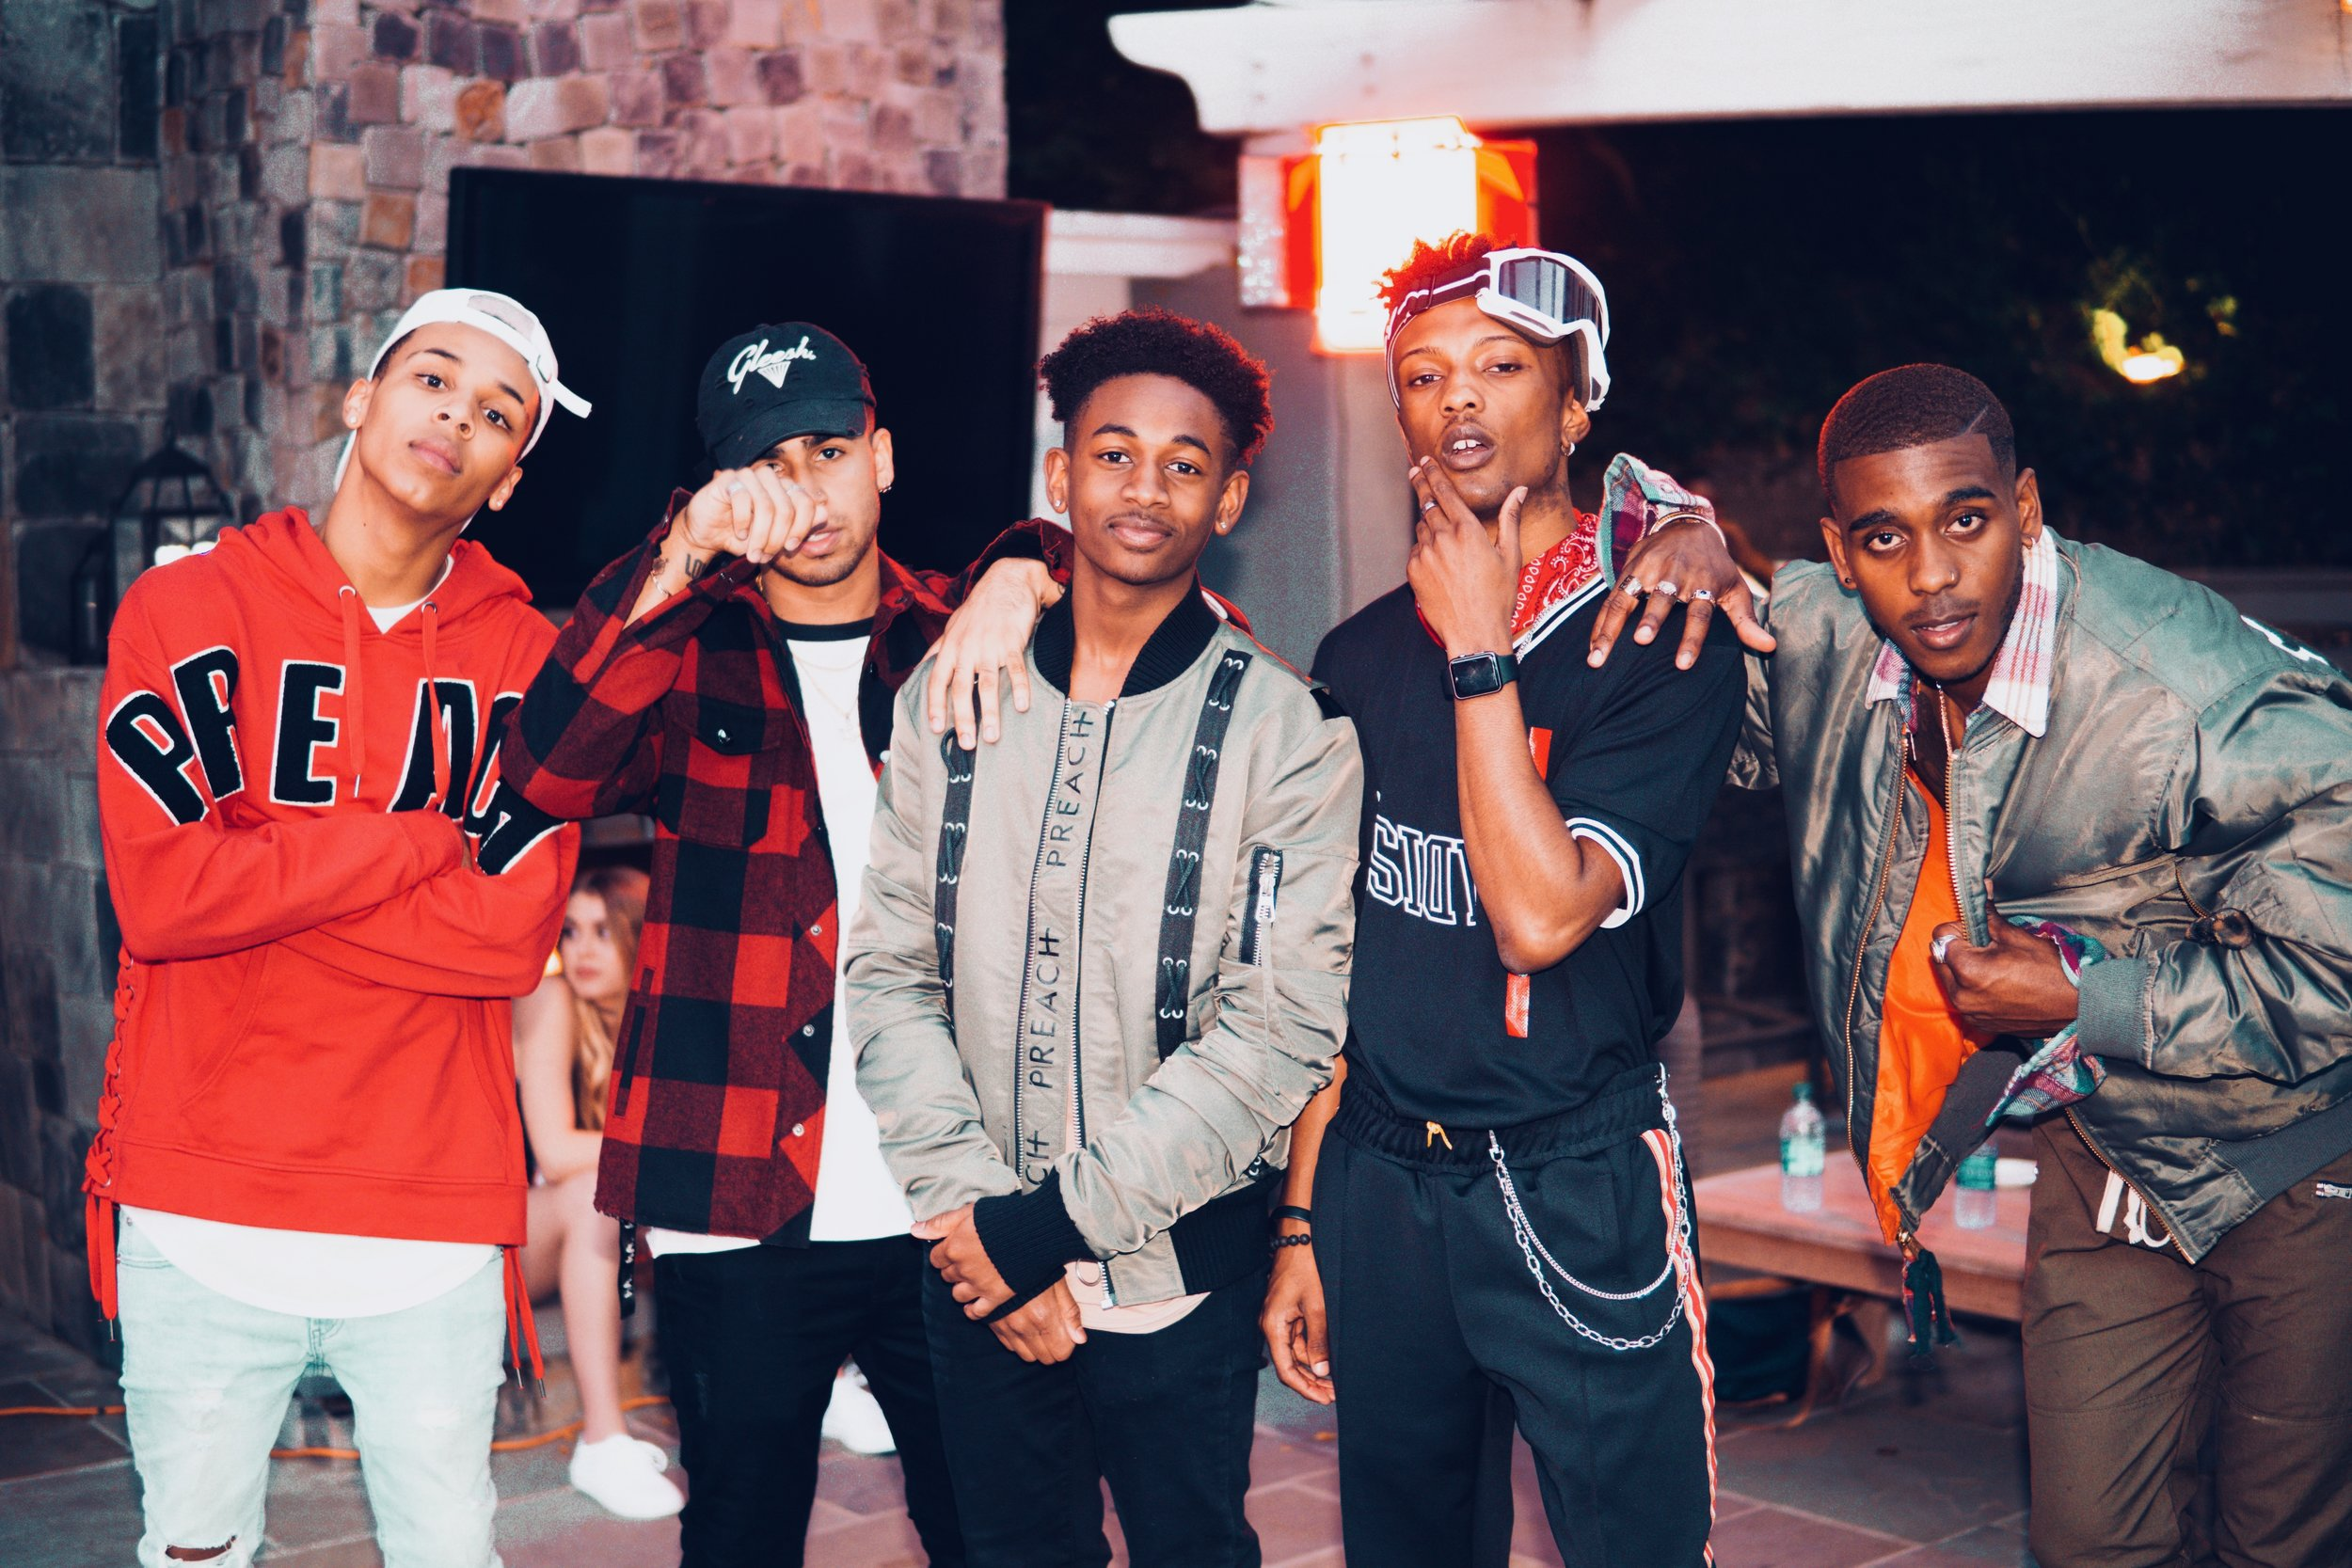 Leek, Chris, Leon, Tre, T on set for the Rock music video.